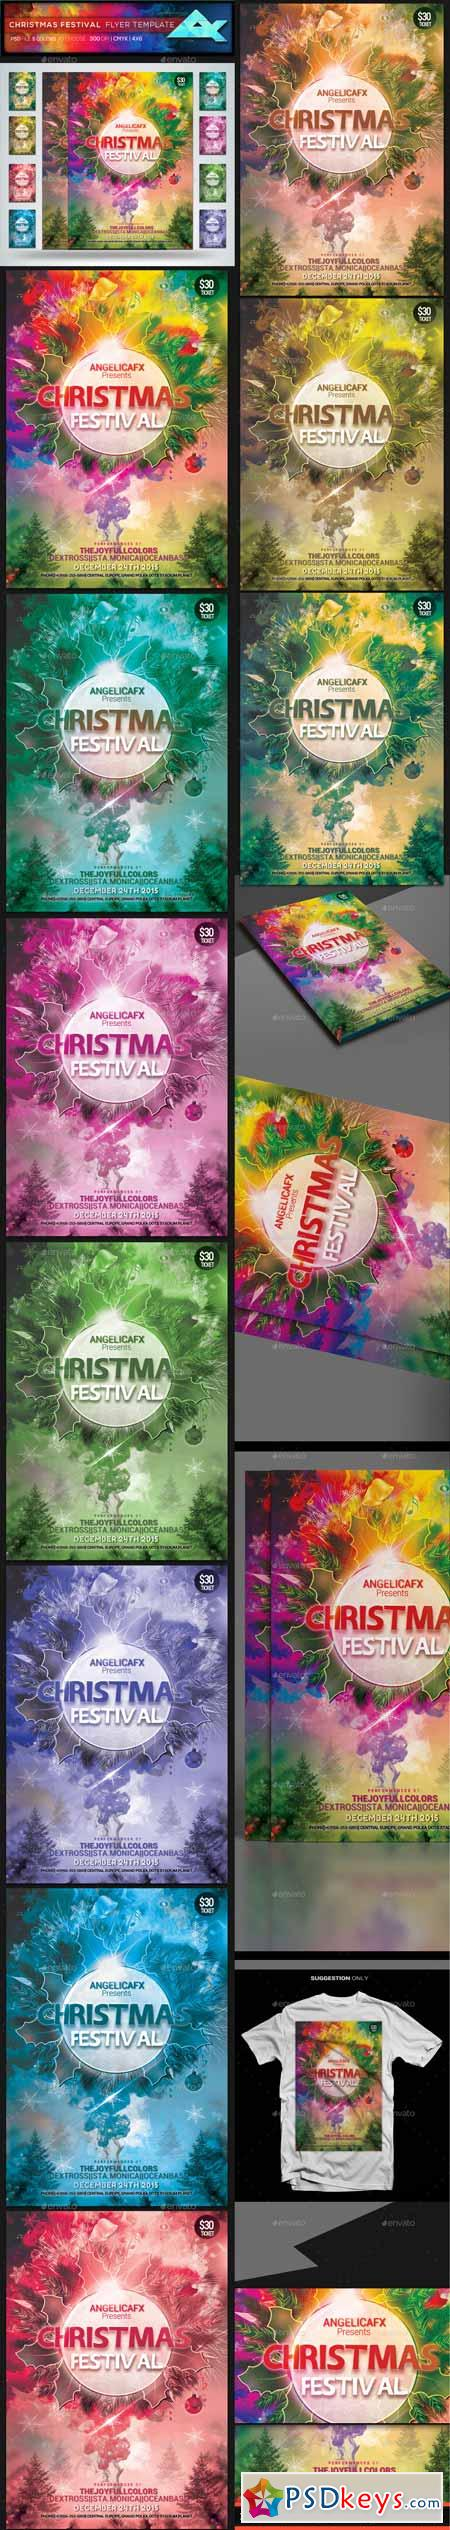 Christmas Festival Flyer Template 13239749